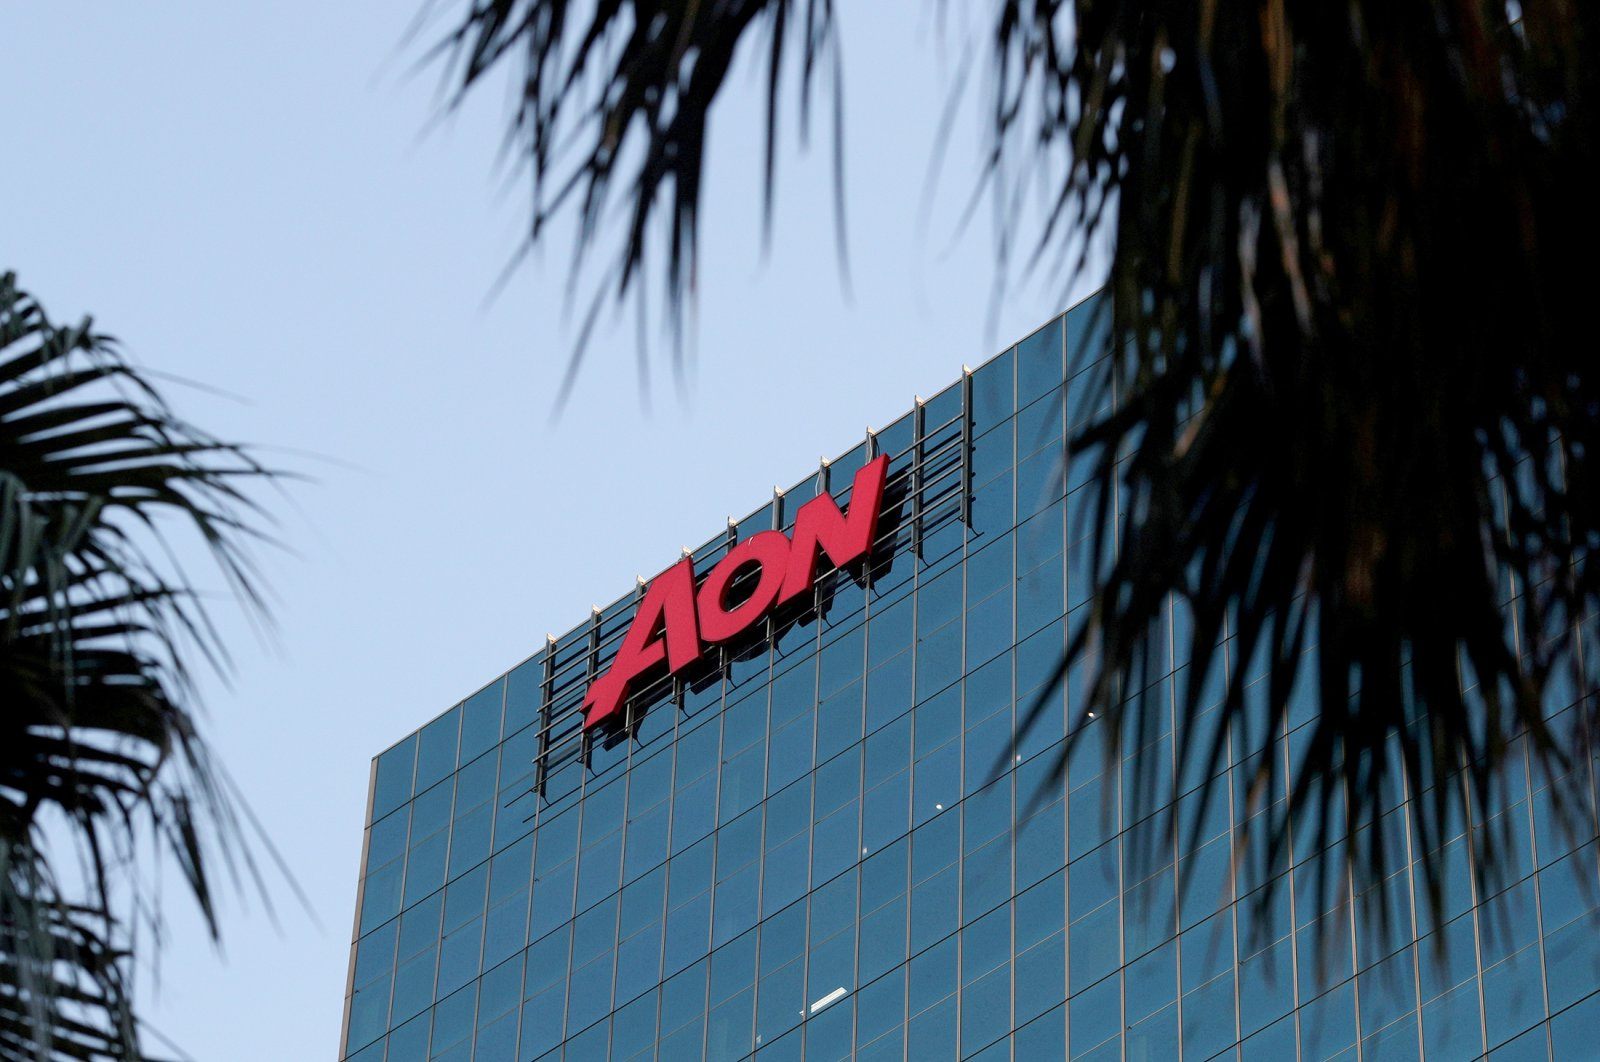 An office building with the Aon logo is seen in the Central Business District of Sydney, Australia, June 3, 2020. (Reuters Photo)